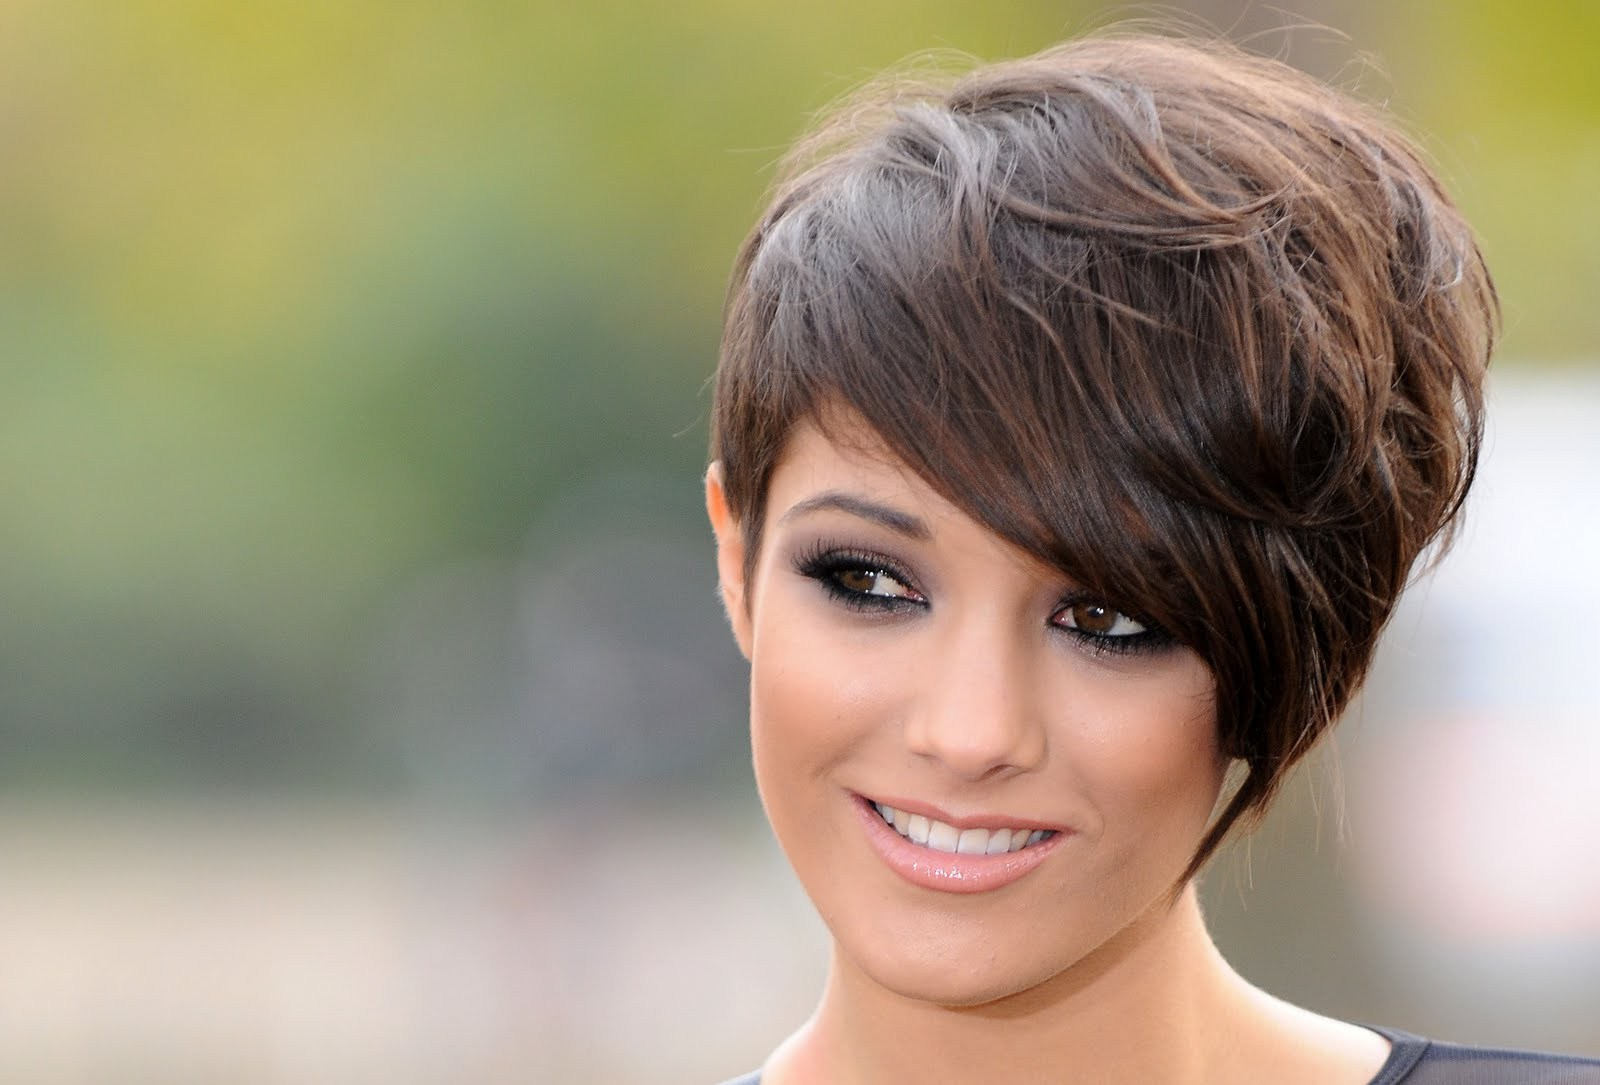 Razor Cut Hairstyles | Short Hairstyles With Razor Cuts Pertaining To Razor Cut Short Hairstyles (View 12 of 25)